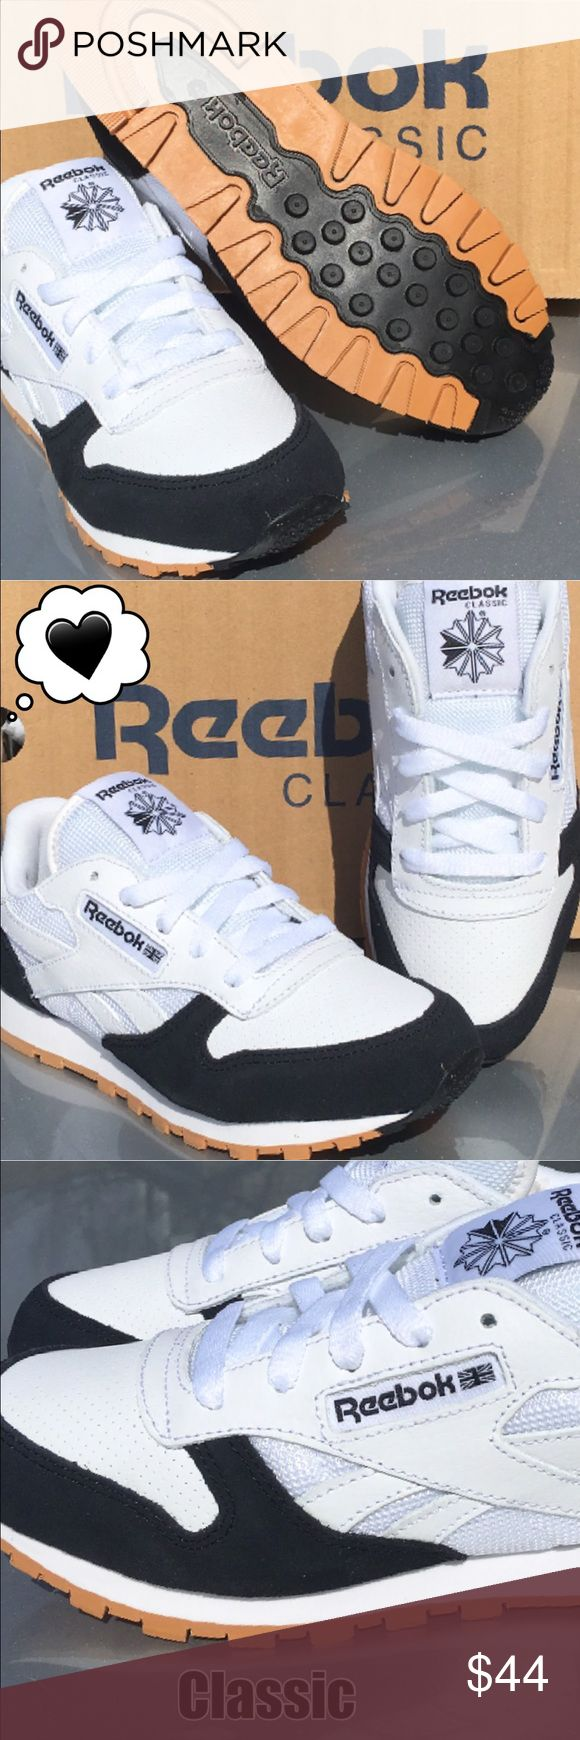 New Reebok Classic Sneaker for Boy or Girl❤️🔥🔥🔥 Everyone Loves them! New Reebok Classic sneaker for boys or girls Always one of our best..🔥🔥🔥 Reebok Shoes Sneakers